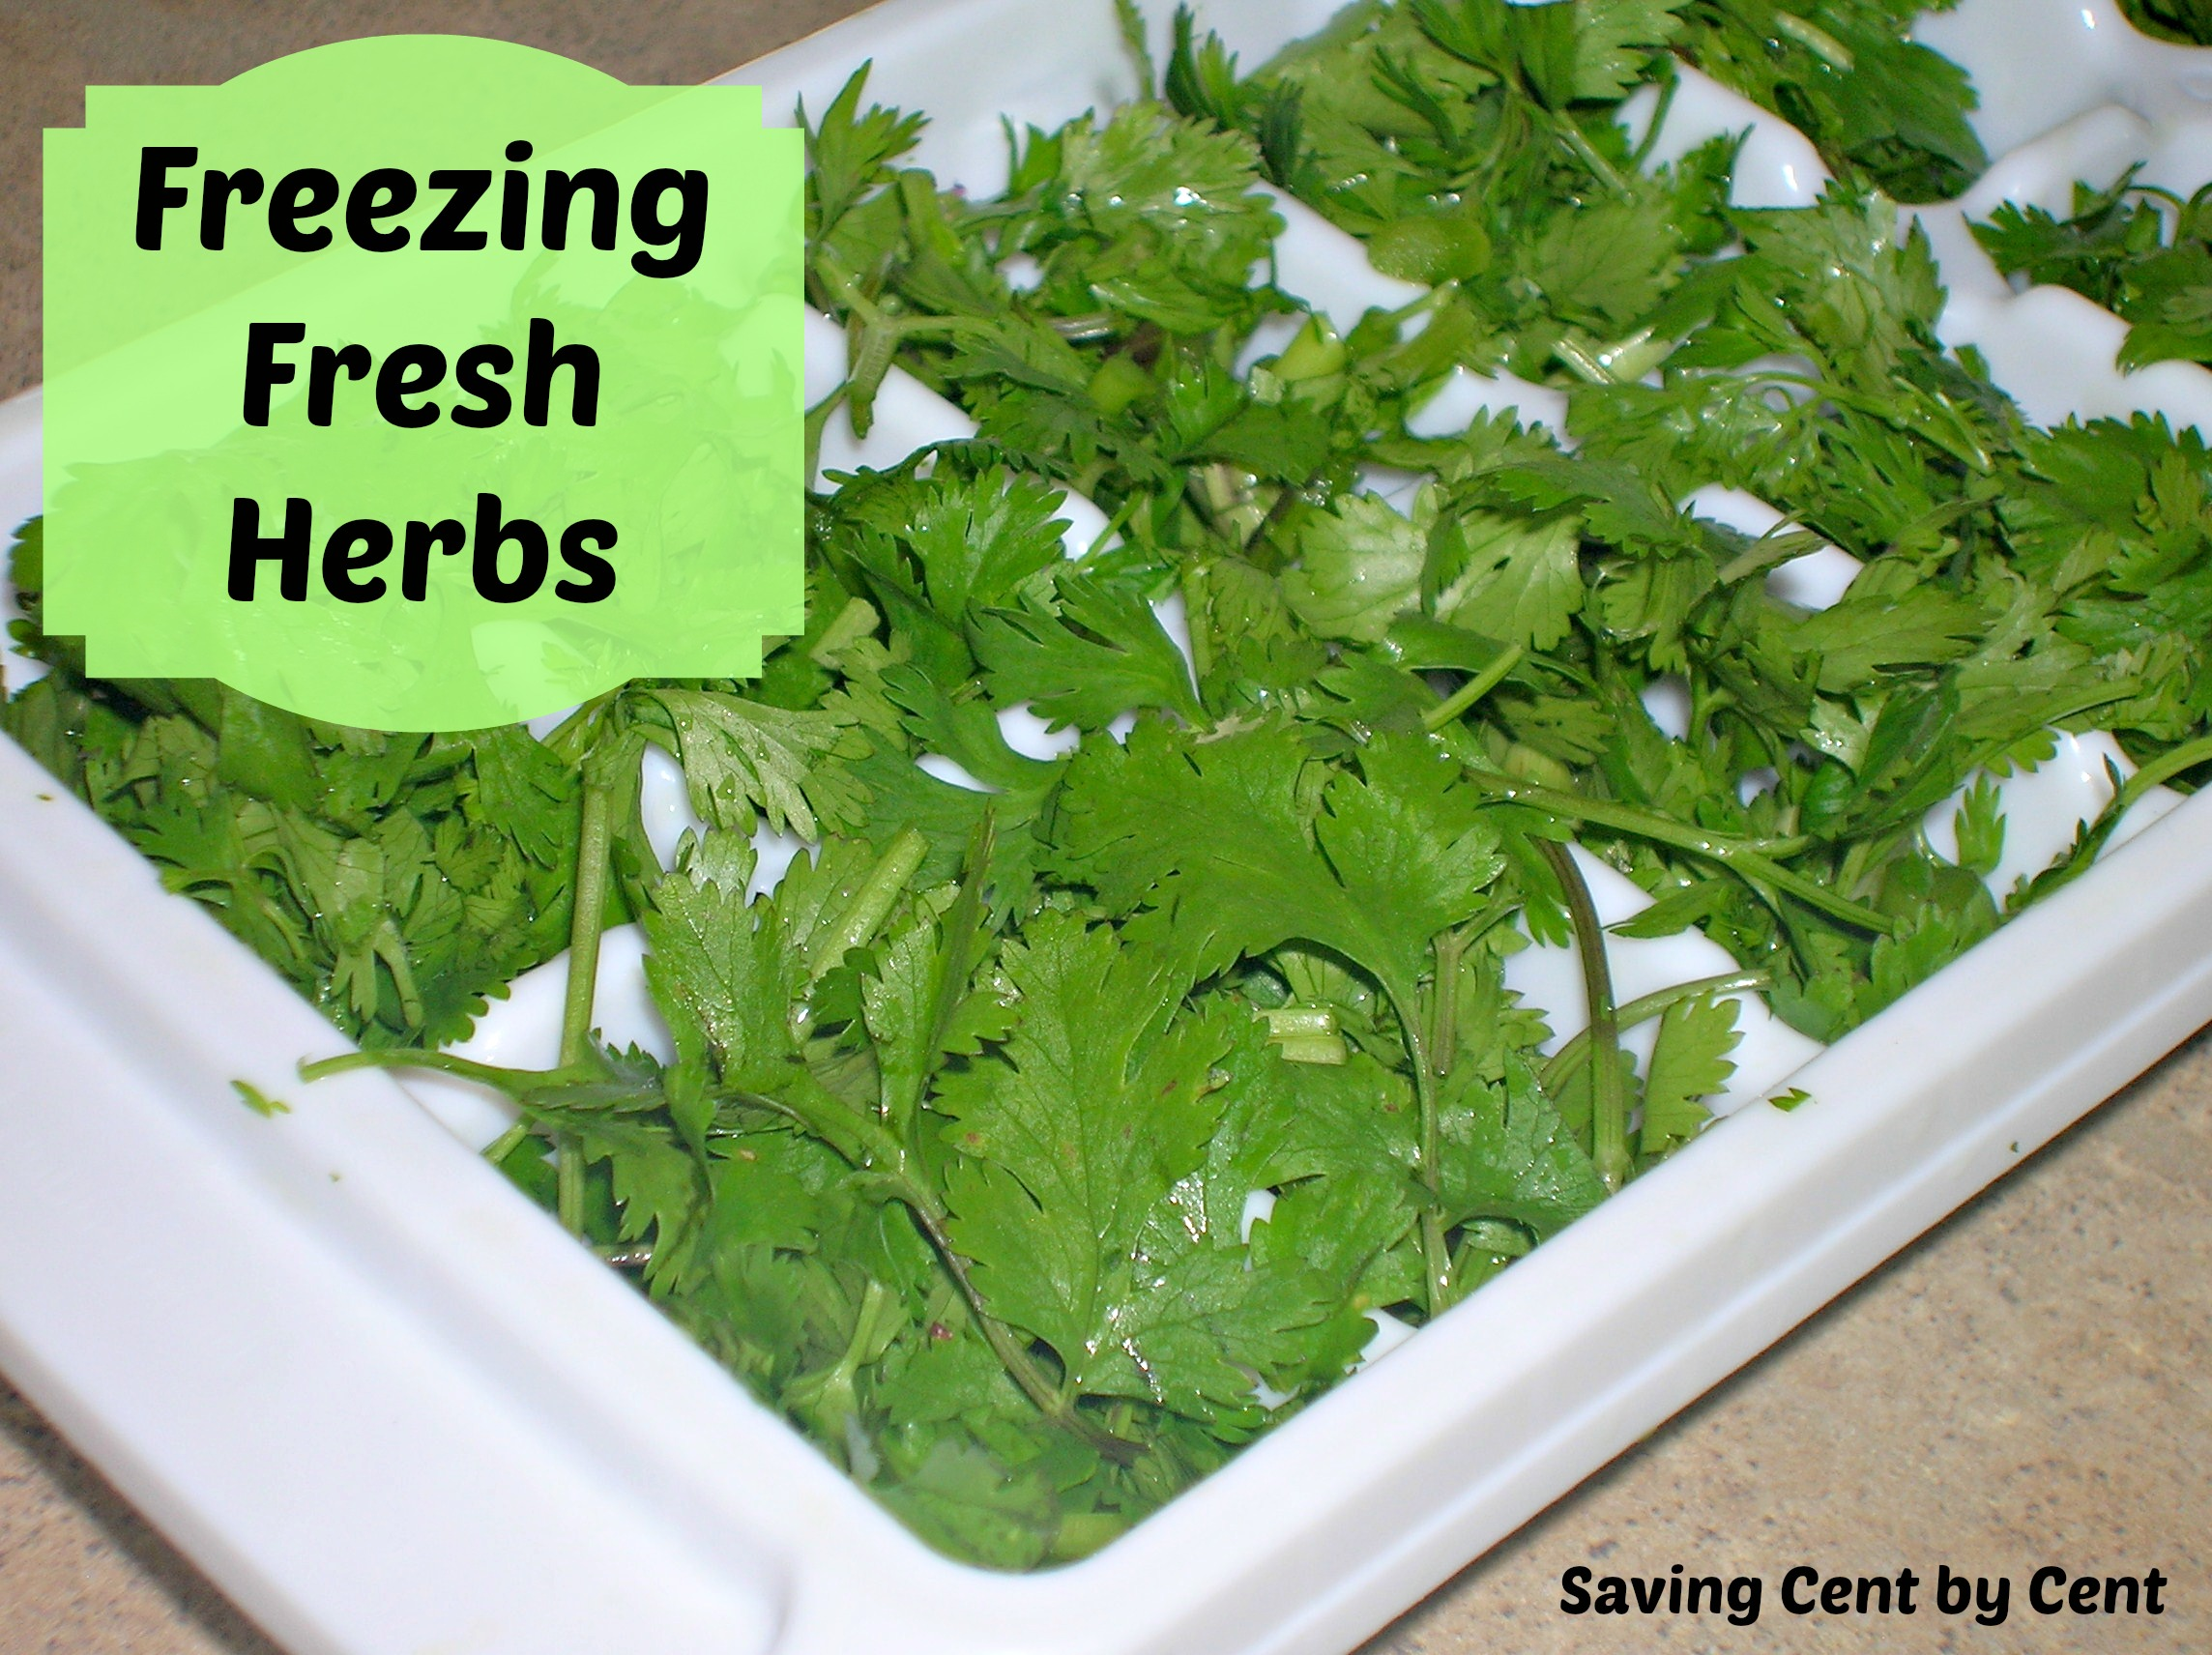 Inspiring Parsley Can You Freeze Coriander Root Freezing Fresh Herbs Freezing Fresh Herbs Saving Cent By Cent Can You Freeze Cilantro houzz 01 Can You Freeze Cilantro